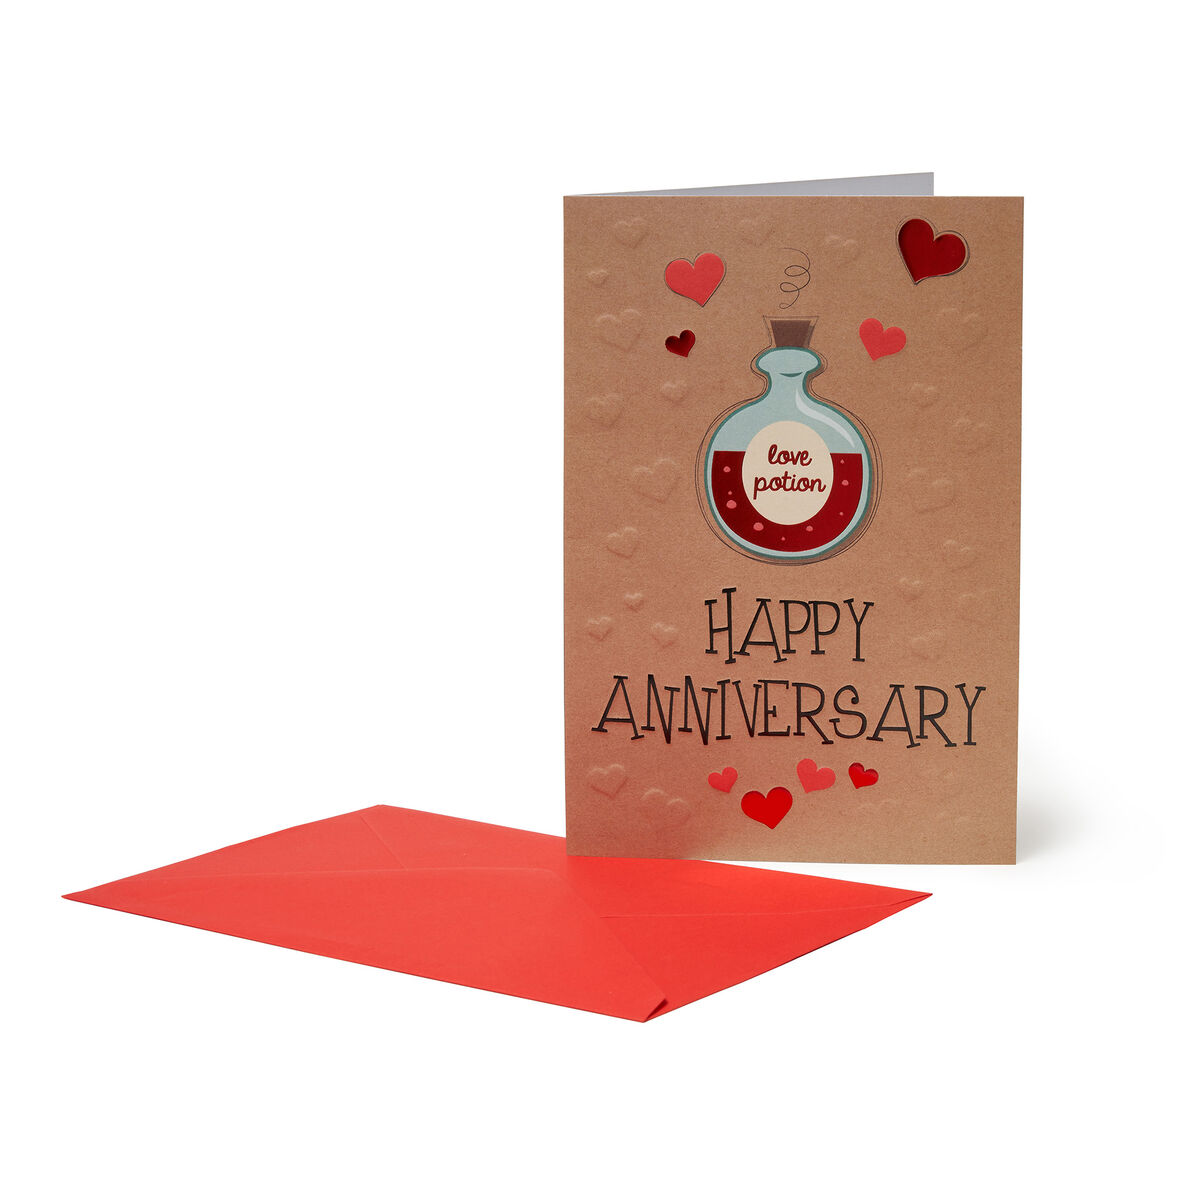 Greeting Card - Happy Anniversary, , zoo